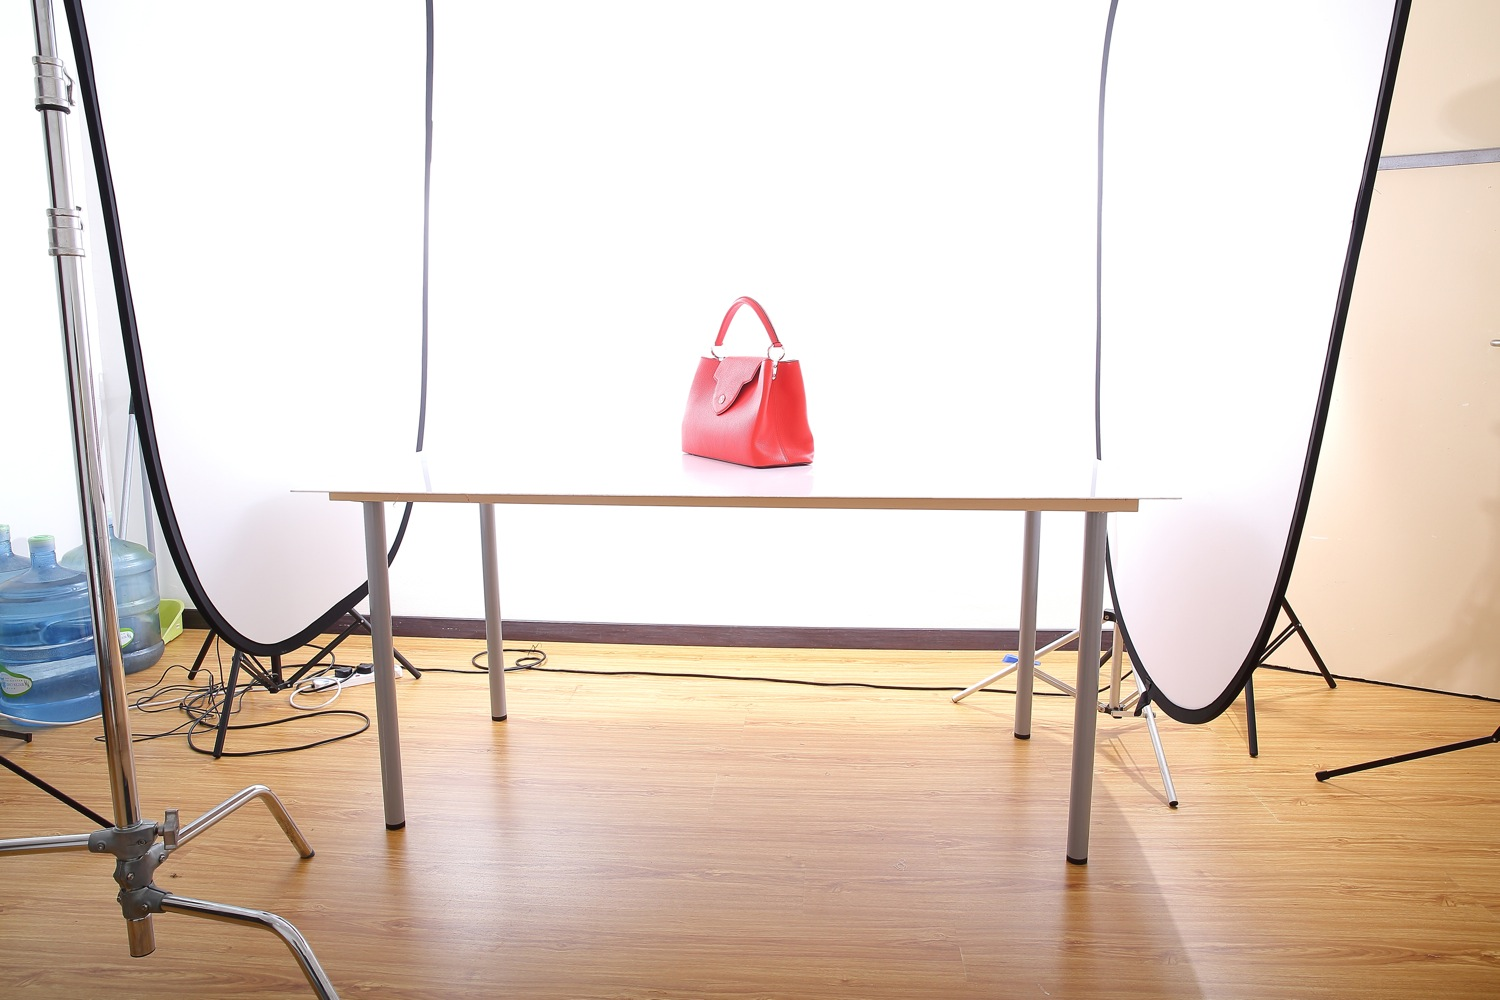 BTS: Photographing a red reflective leather Louis Vuitton Bag